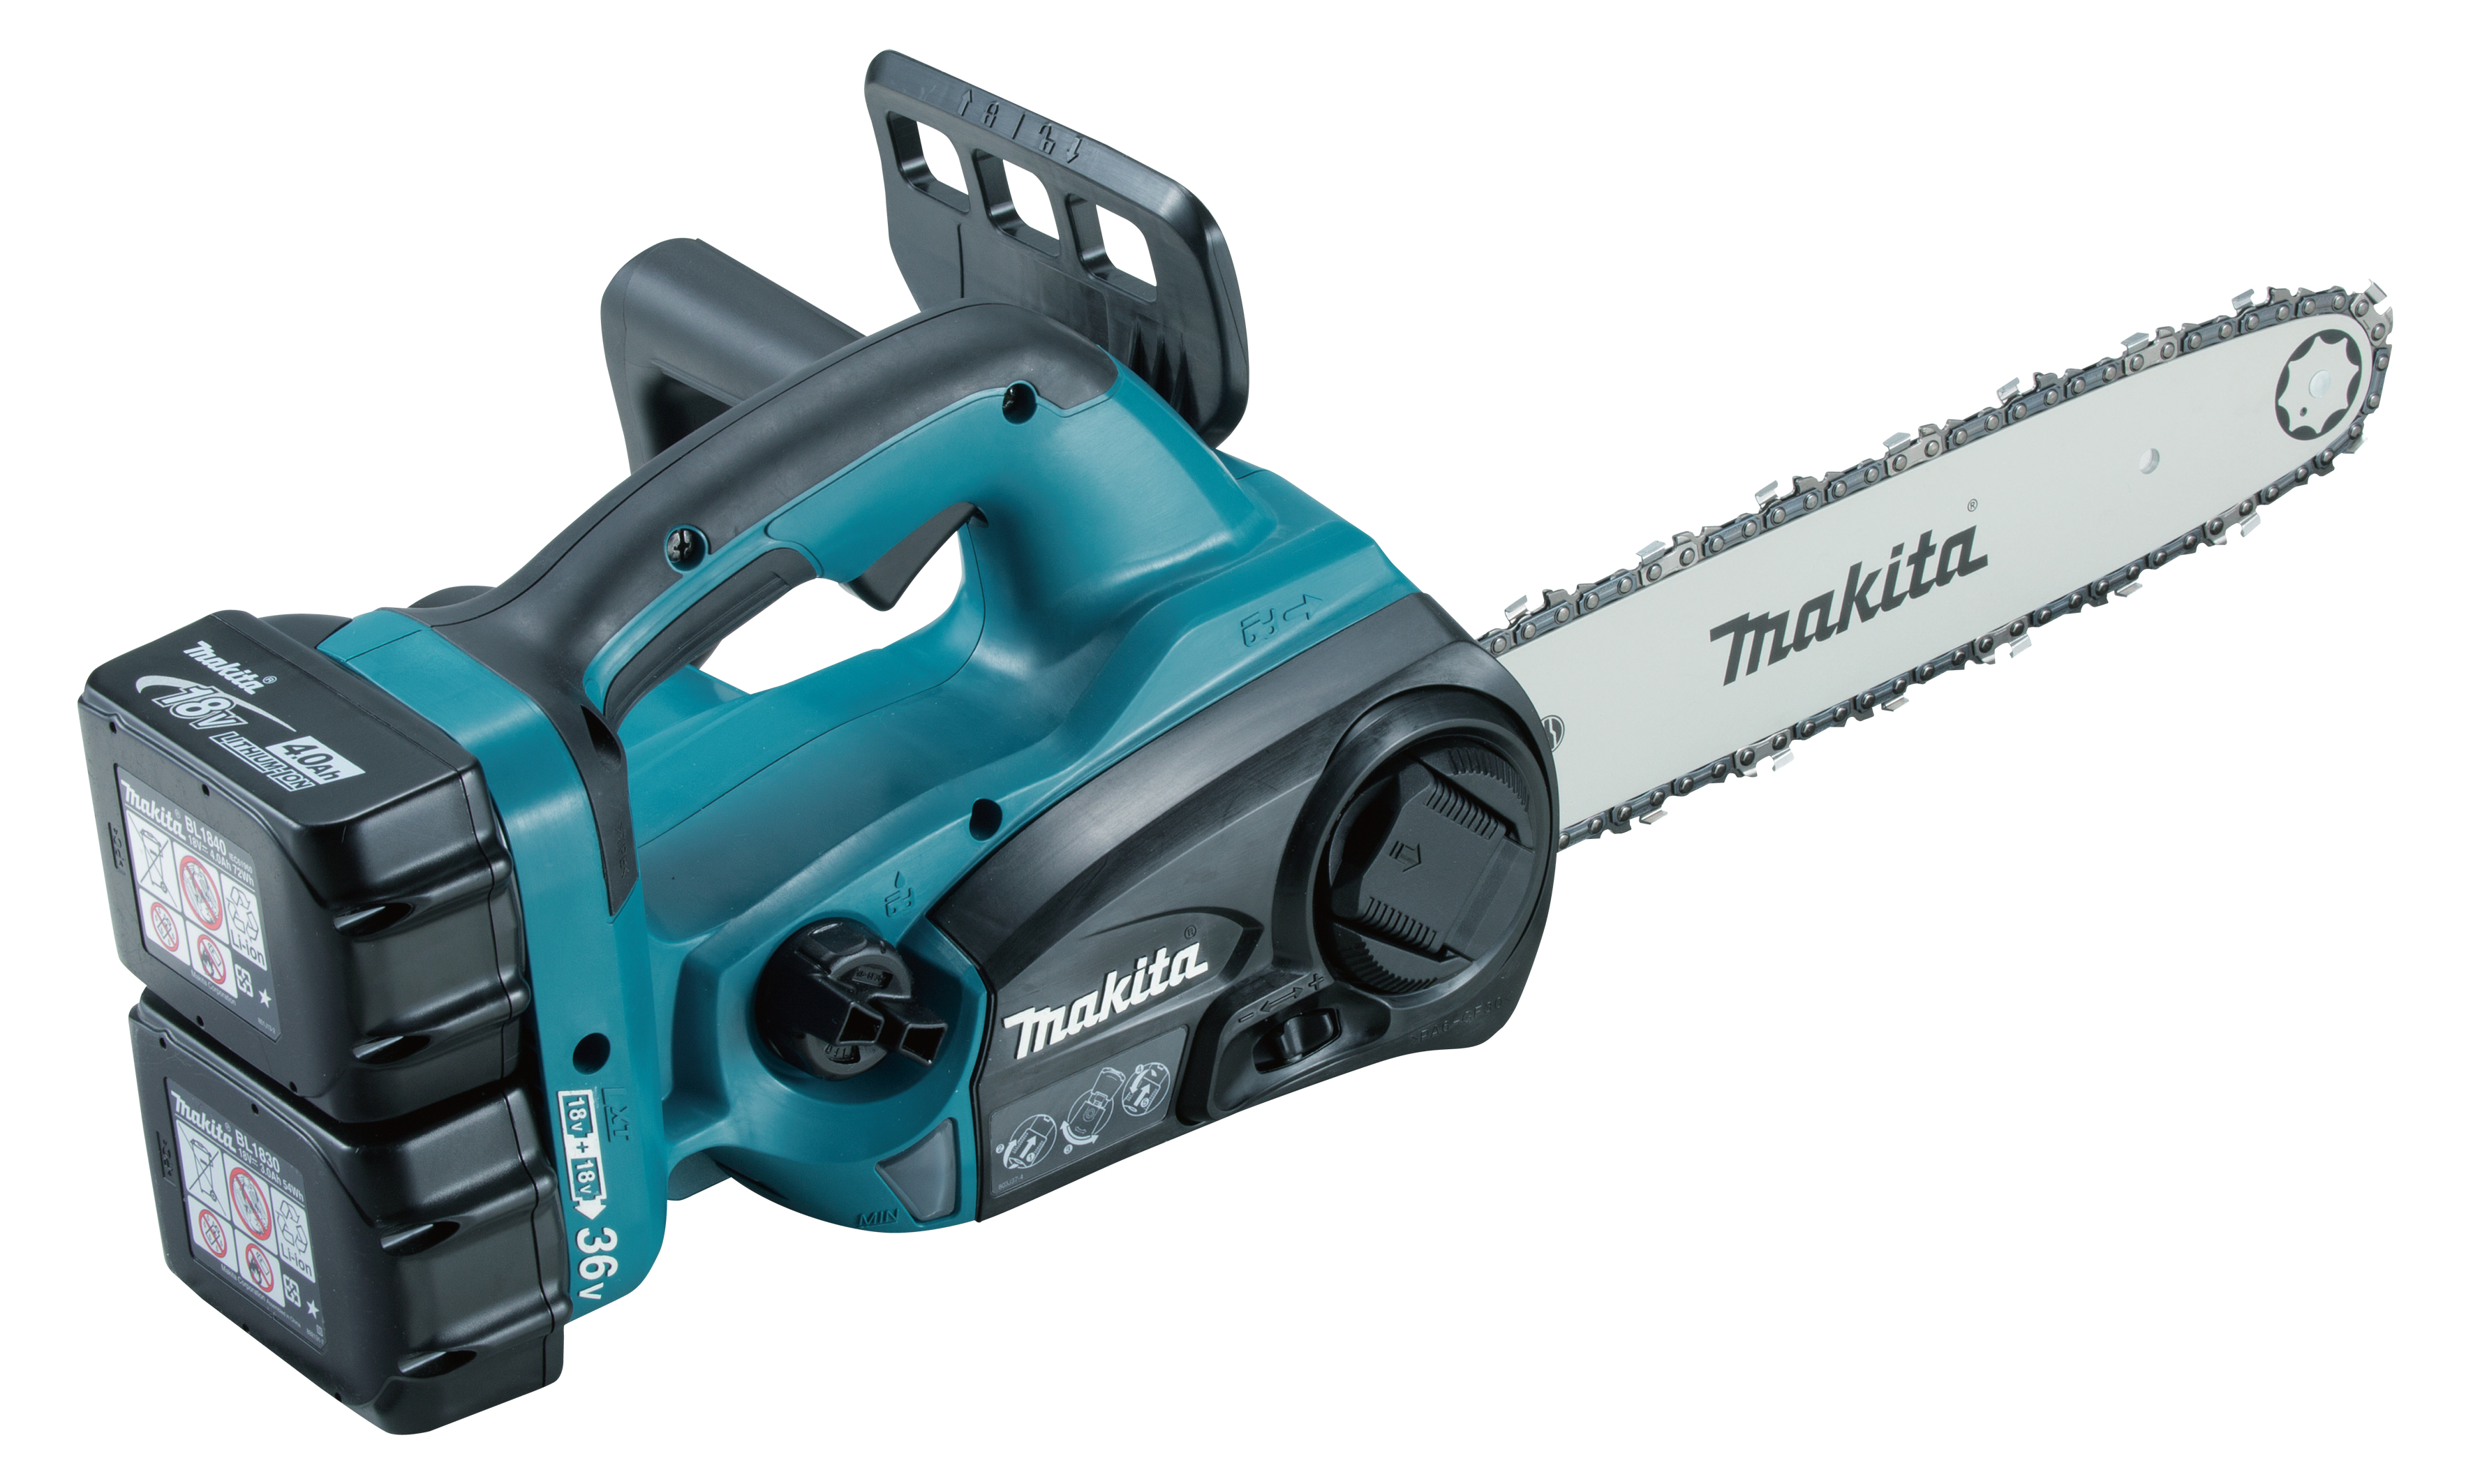 Makita Power Tools South Africa 36v 18v 18v Cordless